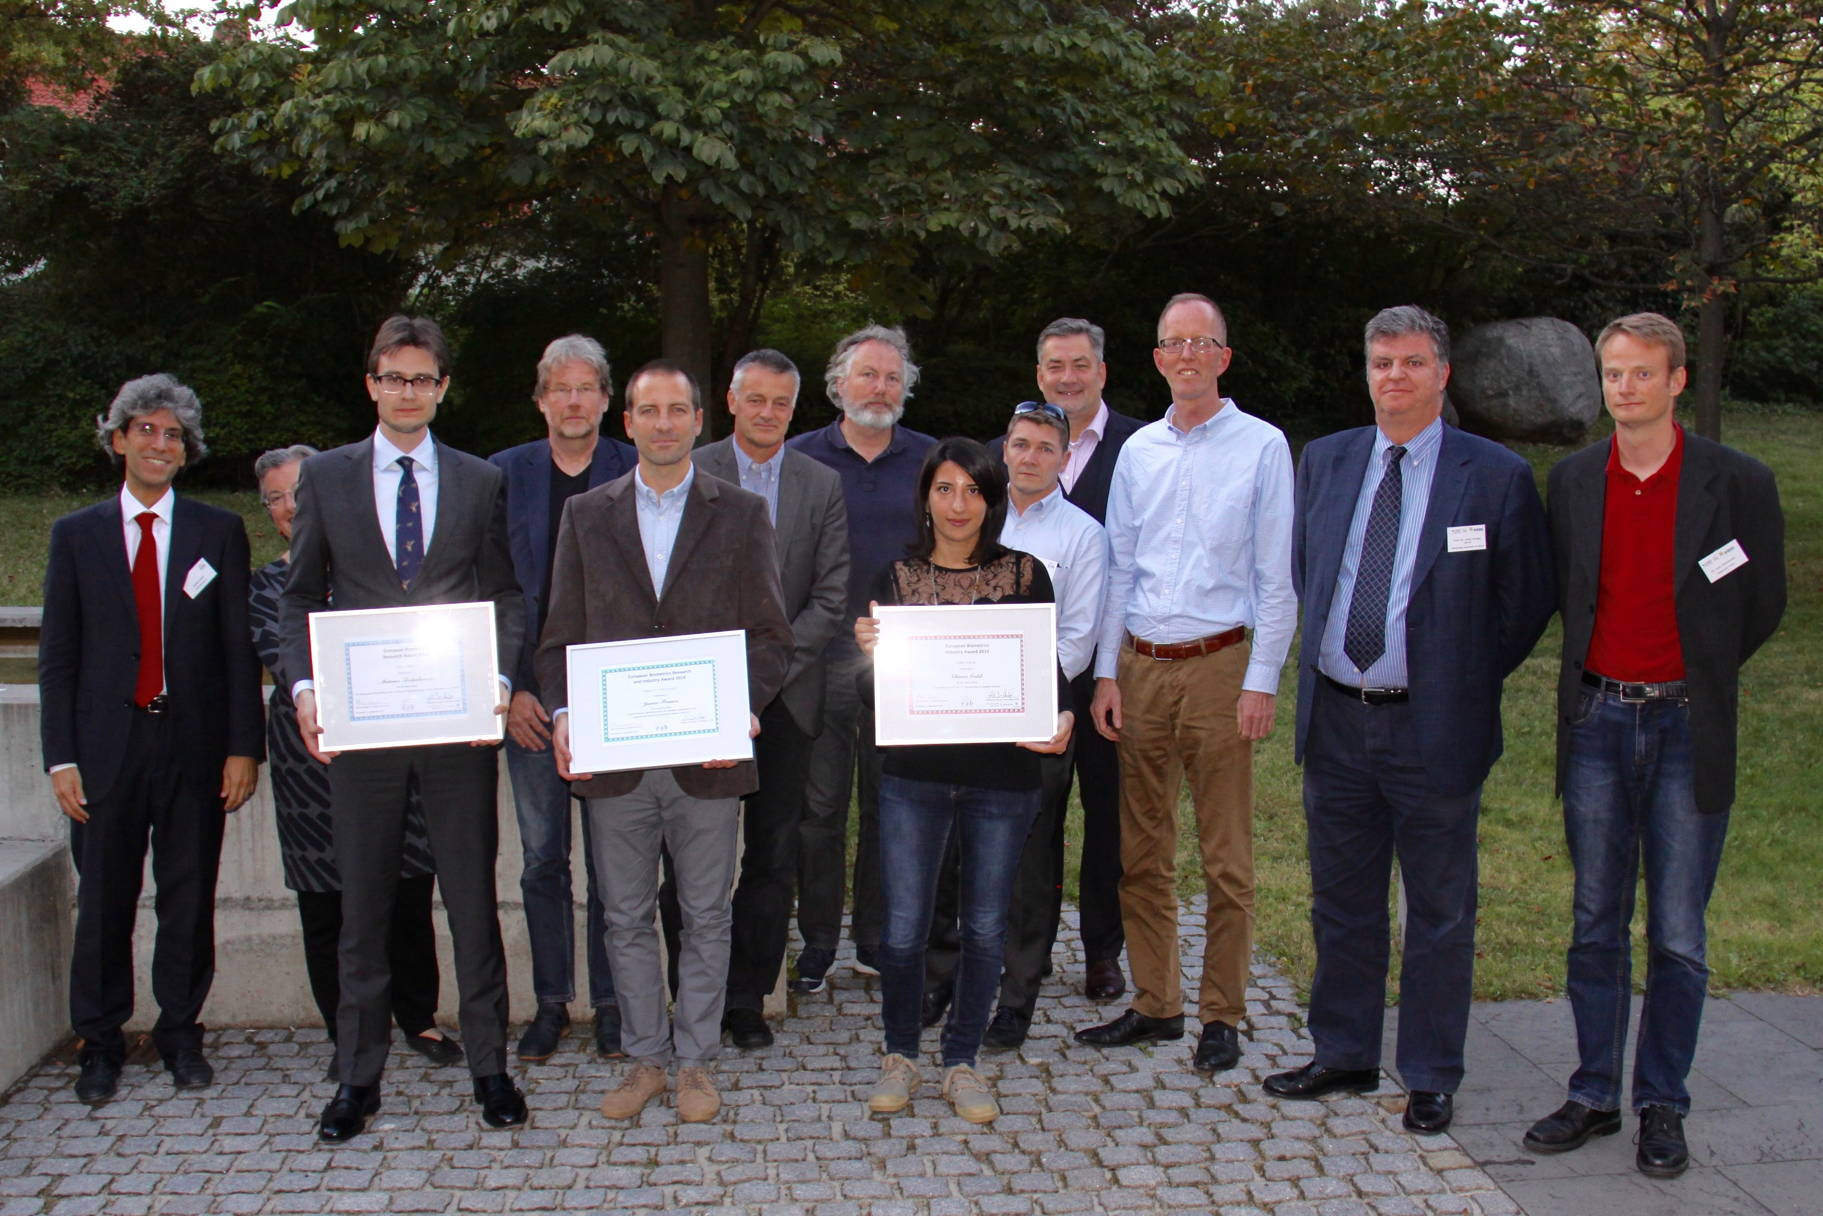 [Photo] Winners of the Awards 2016 together with the jury: (left to right): Patrizio Campisi, Dijana Petrovska Delacretaz, Mateusz Trokielewicz, Raymond Veldhuis, Javier Franco-Pedroso, Christoph Busch, Günther Schumacher, Chiara Galdi, Jean-Christophe Fondeur, Alexander Nouak, Tom Kevenaar, Javier Ortega Garcia and Lars Christensen